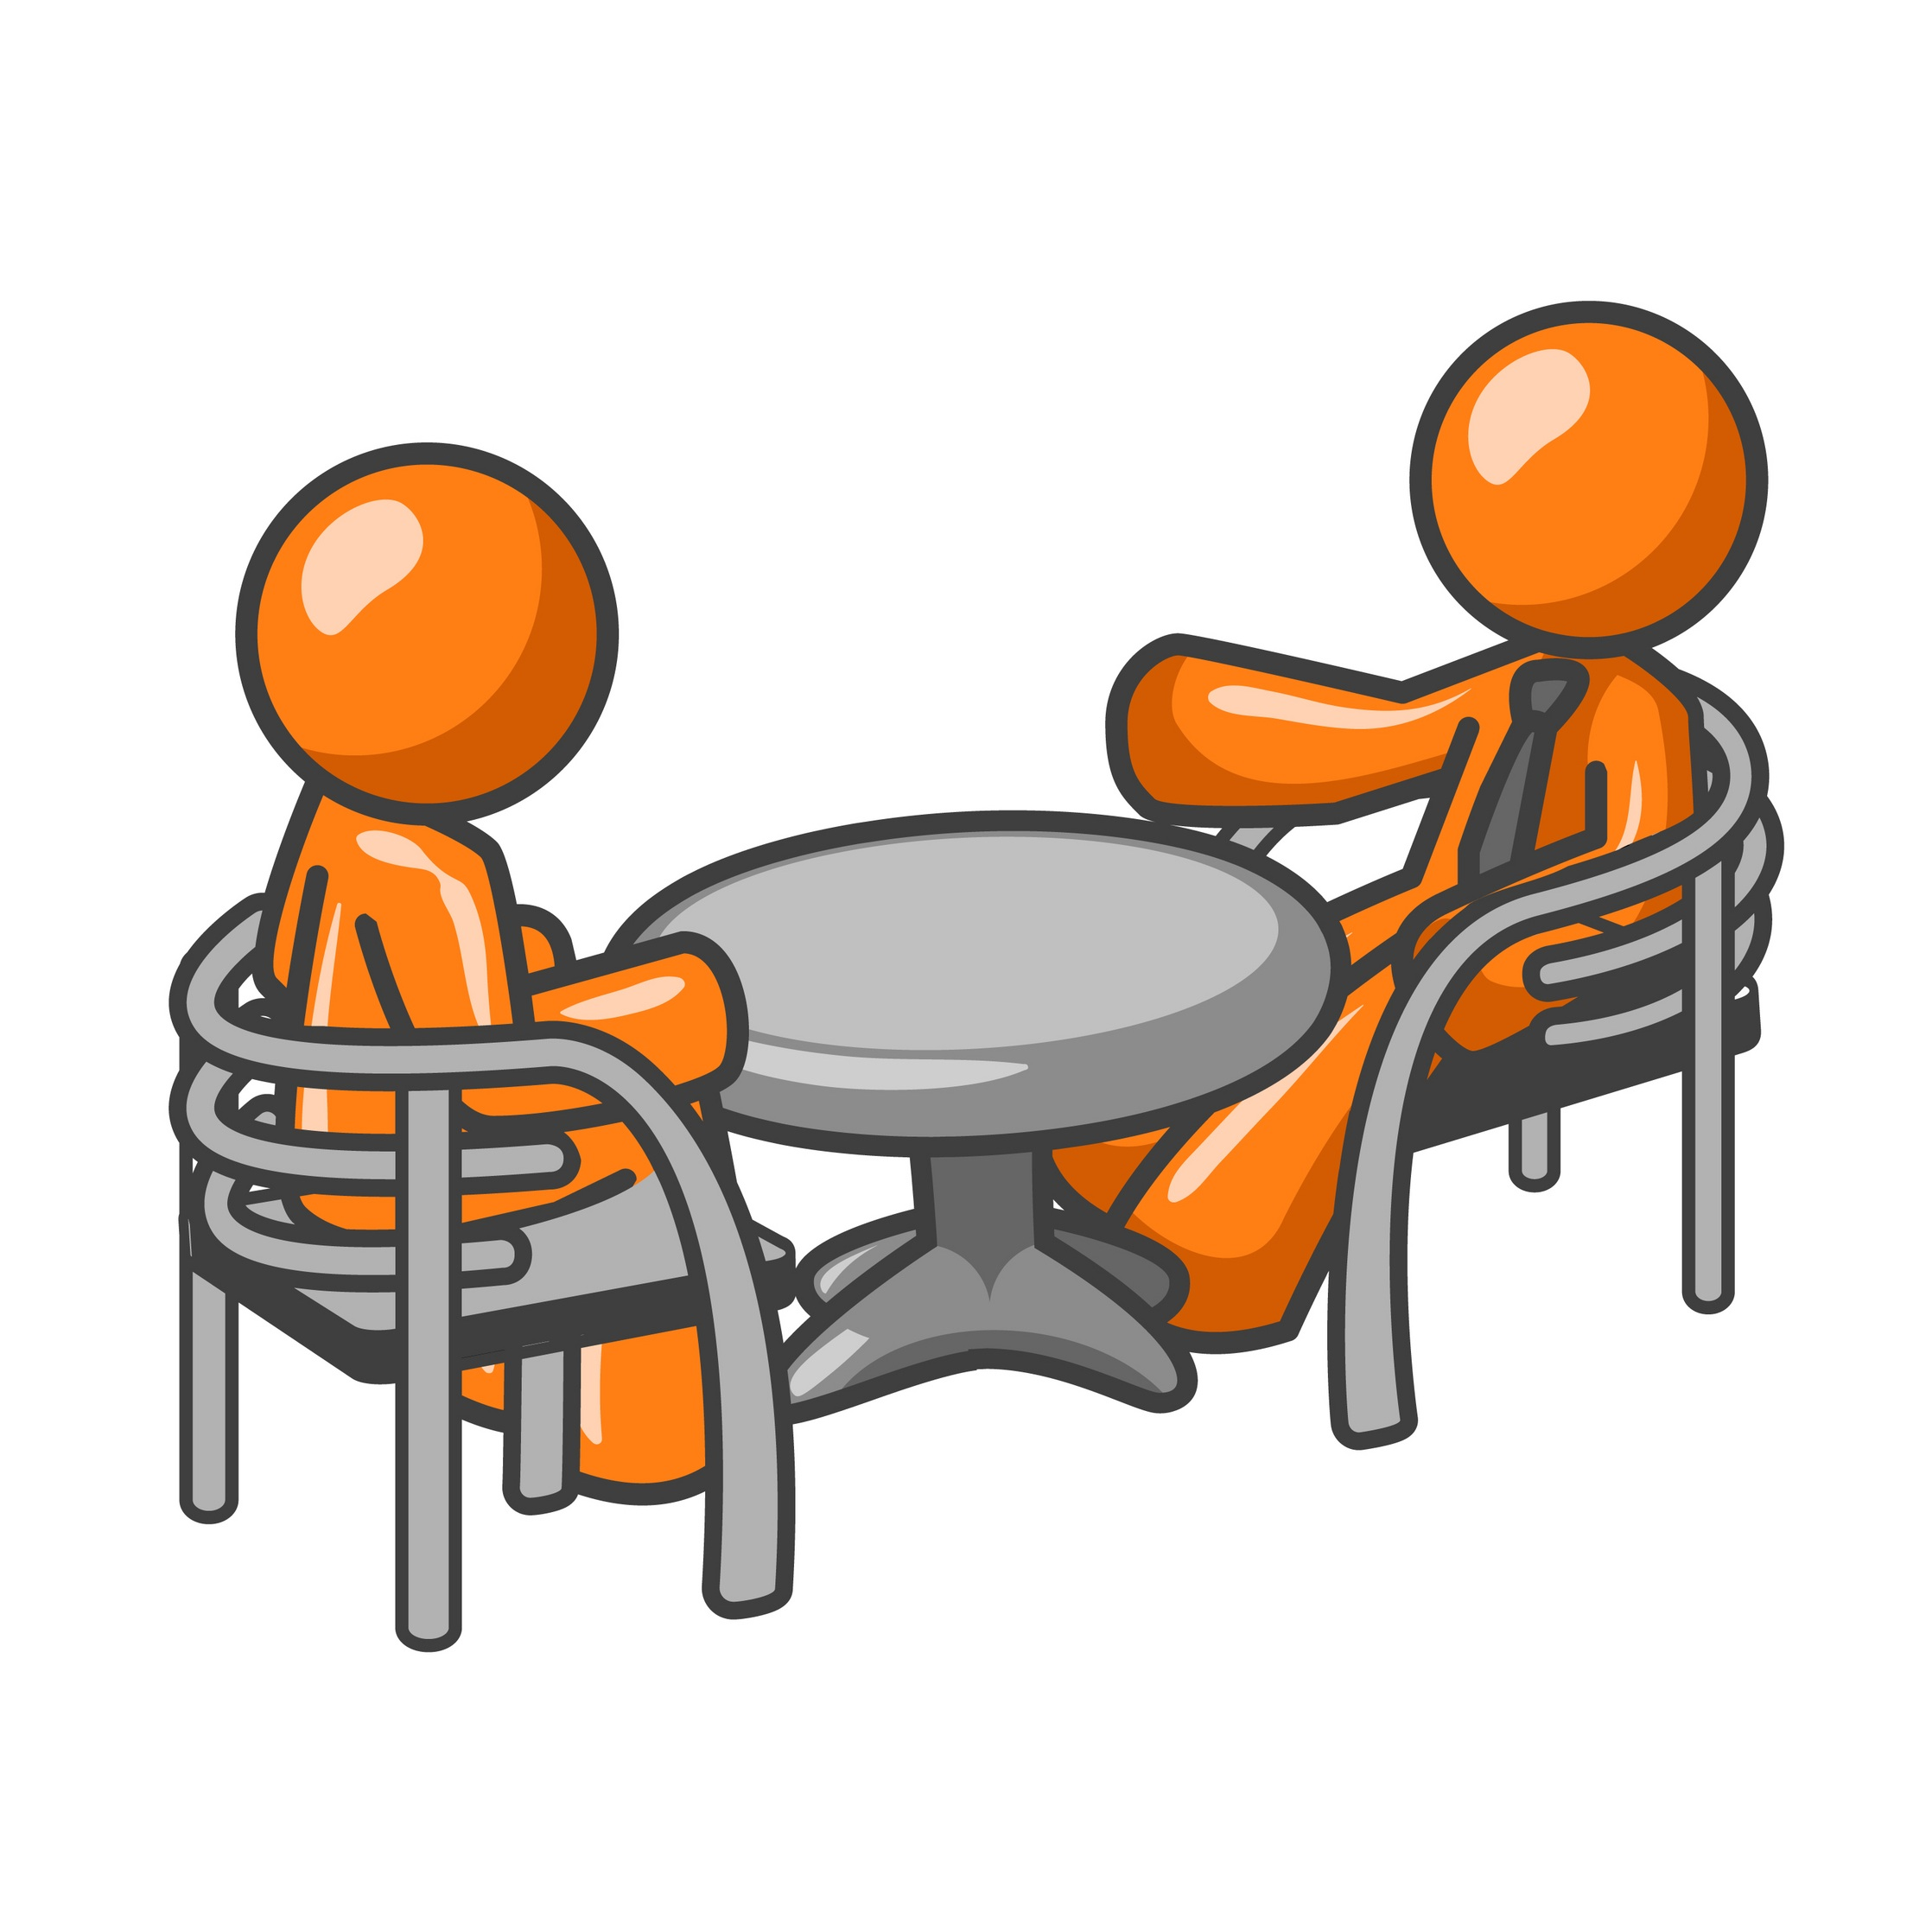 Woman Interview Clipart - Clipart Kid